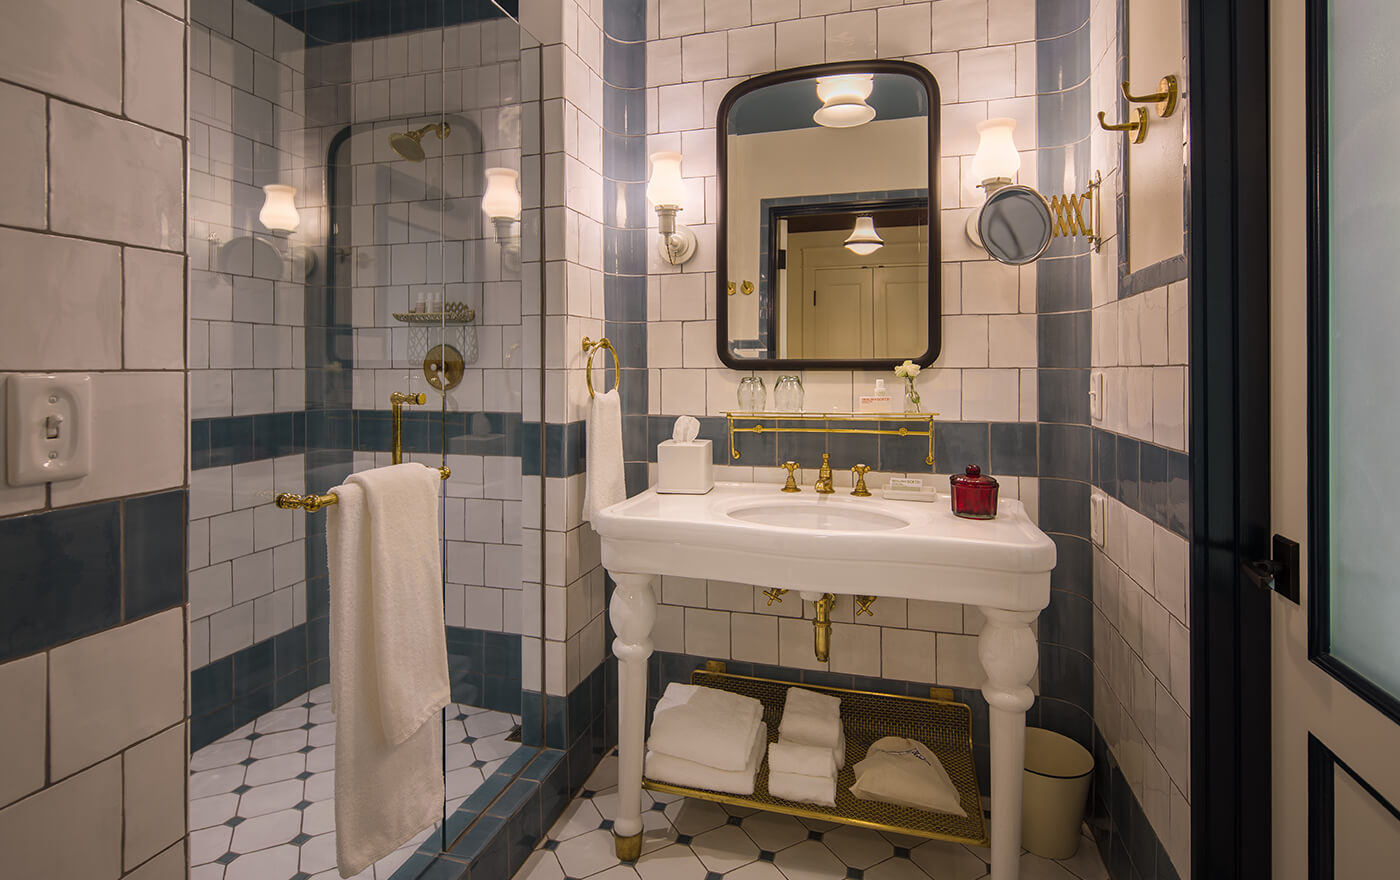 A picture of the bathroom at Hotel Emma's Landmark rooms. Pictured is white and gold vanity next to the shower.